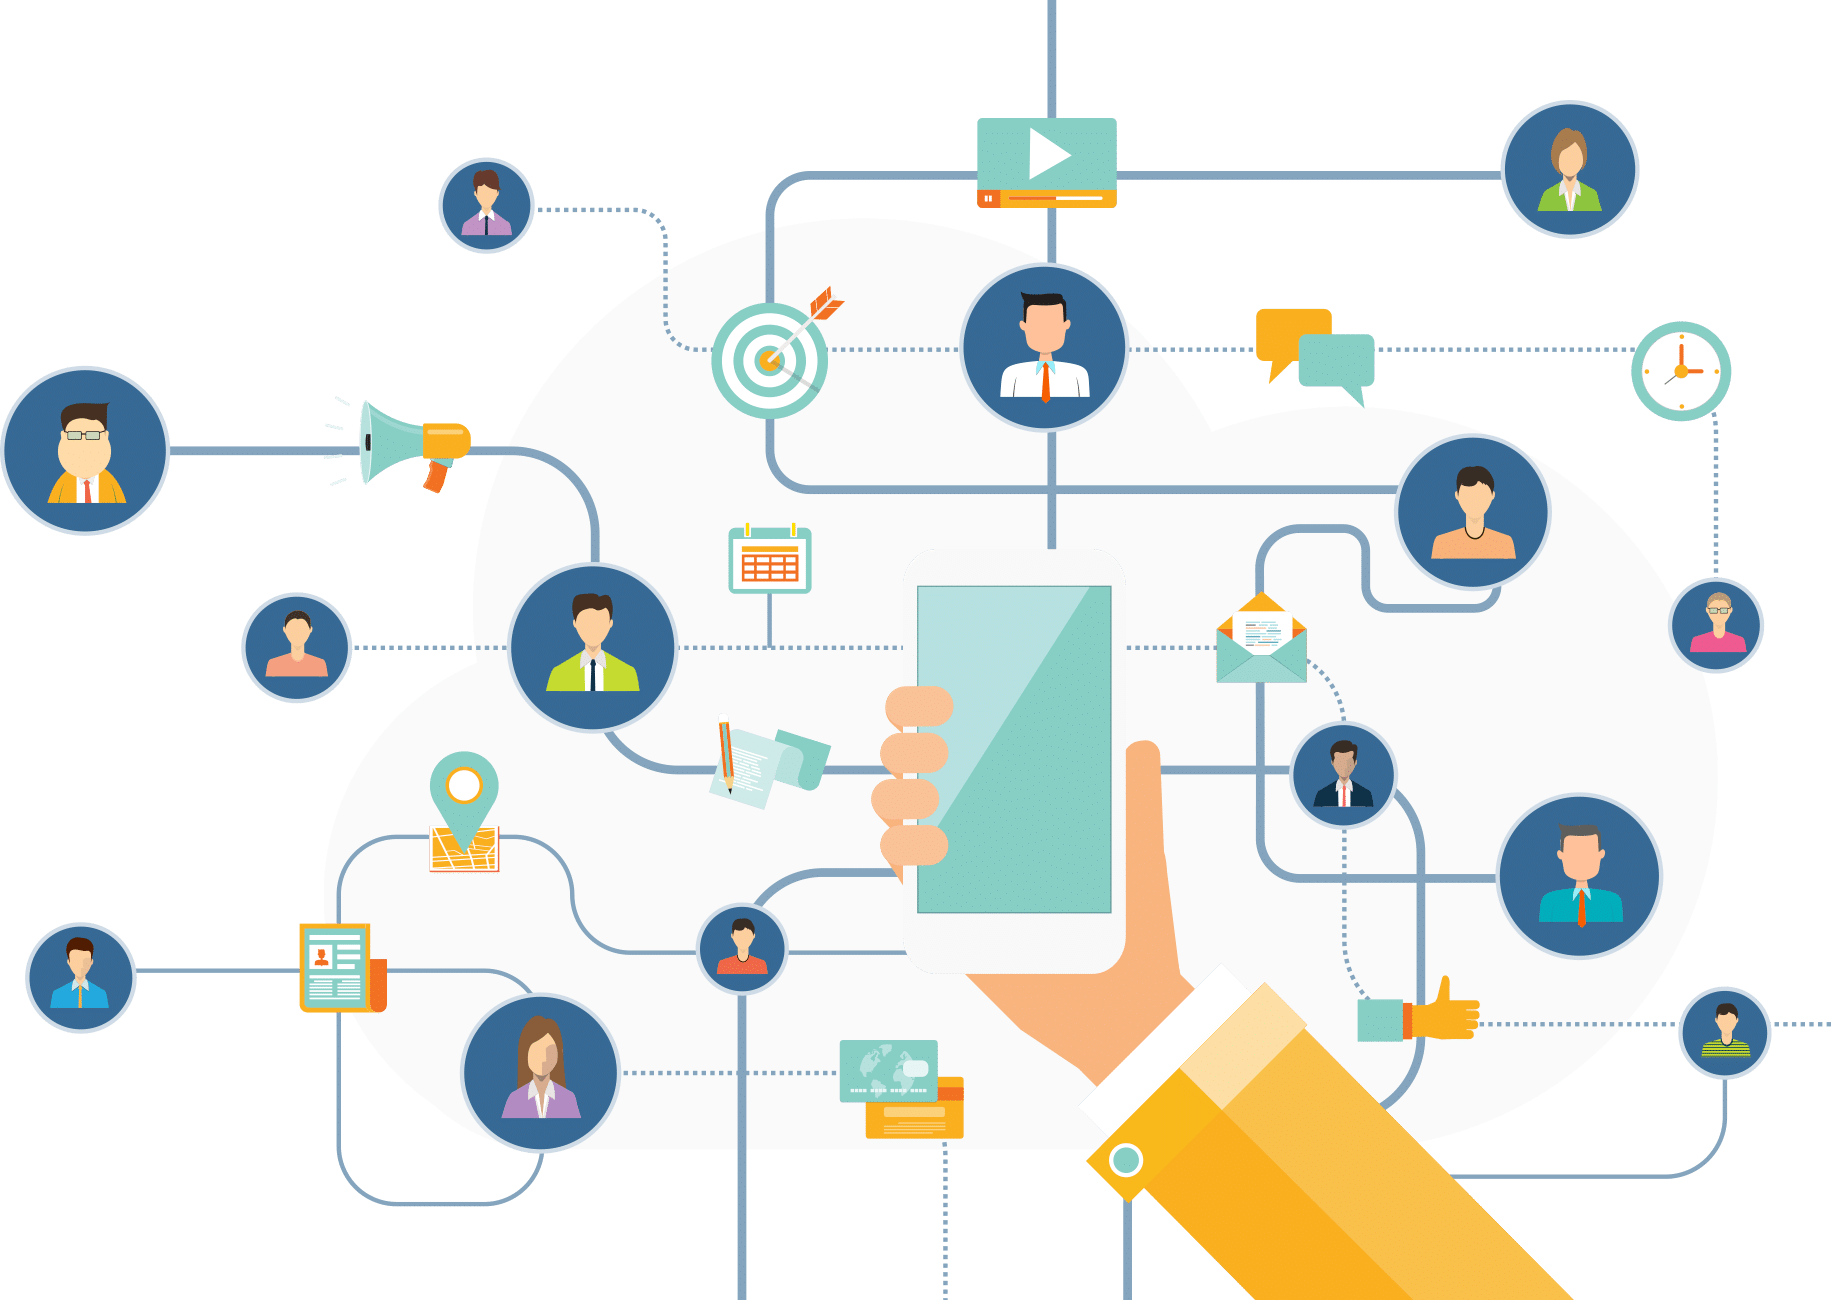 Network of features illustration